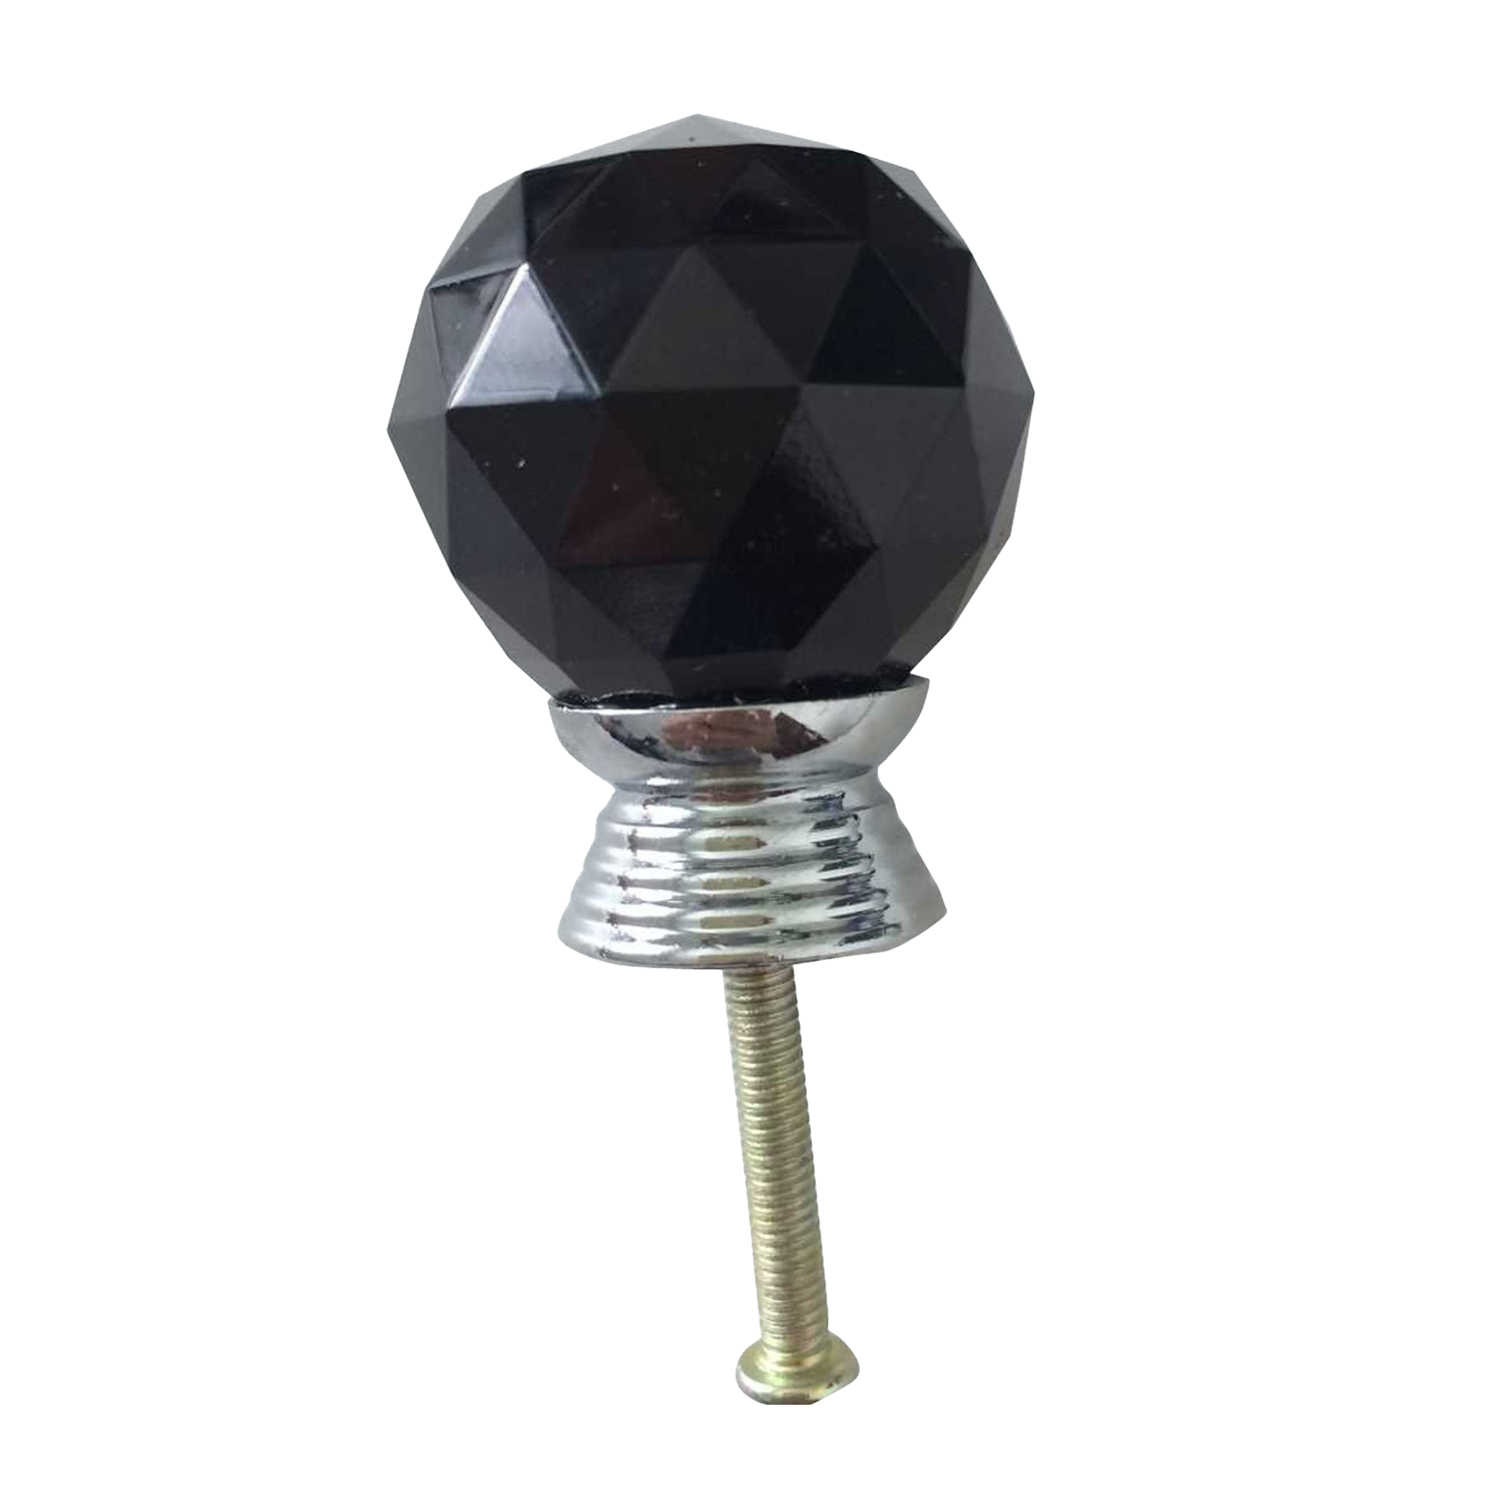 2pcs crystal glass door knobs cabinet furniture kitchen handle black o4r2 ebay Glass furniture pulls